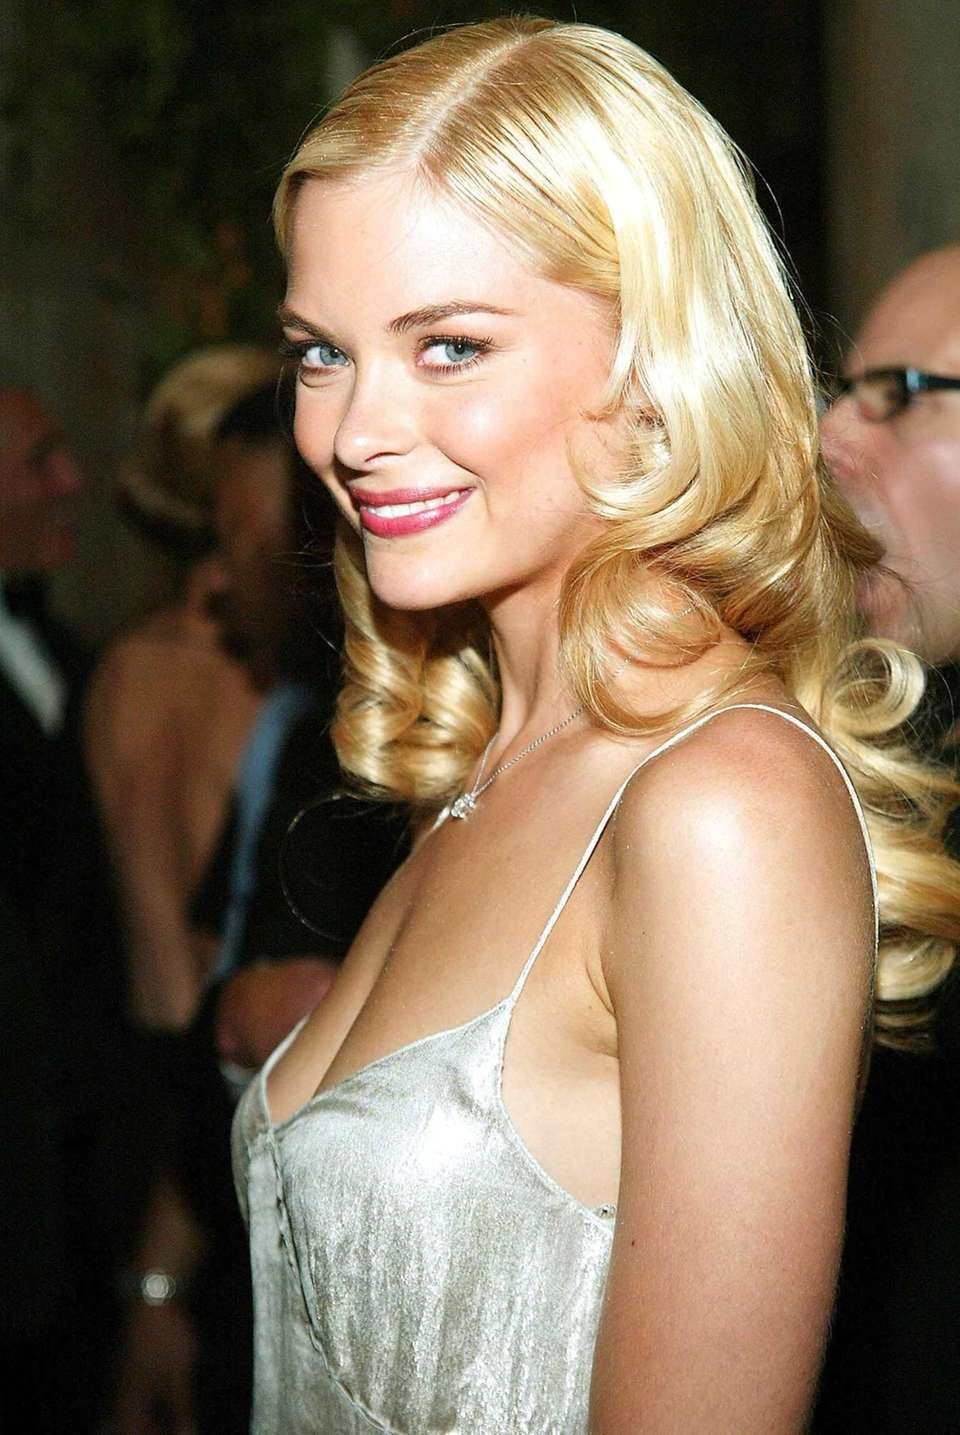 A successful model at age 14, Jaime King